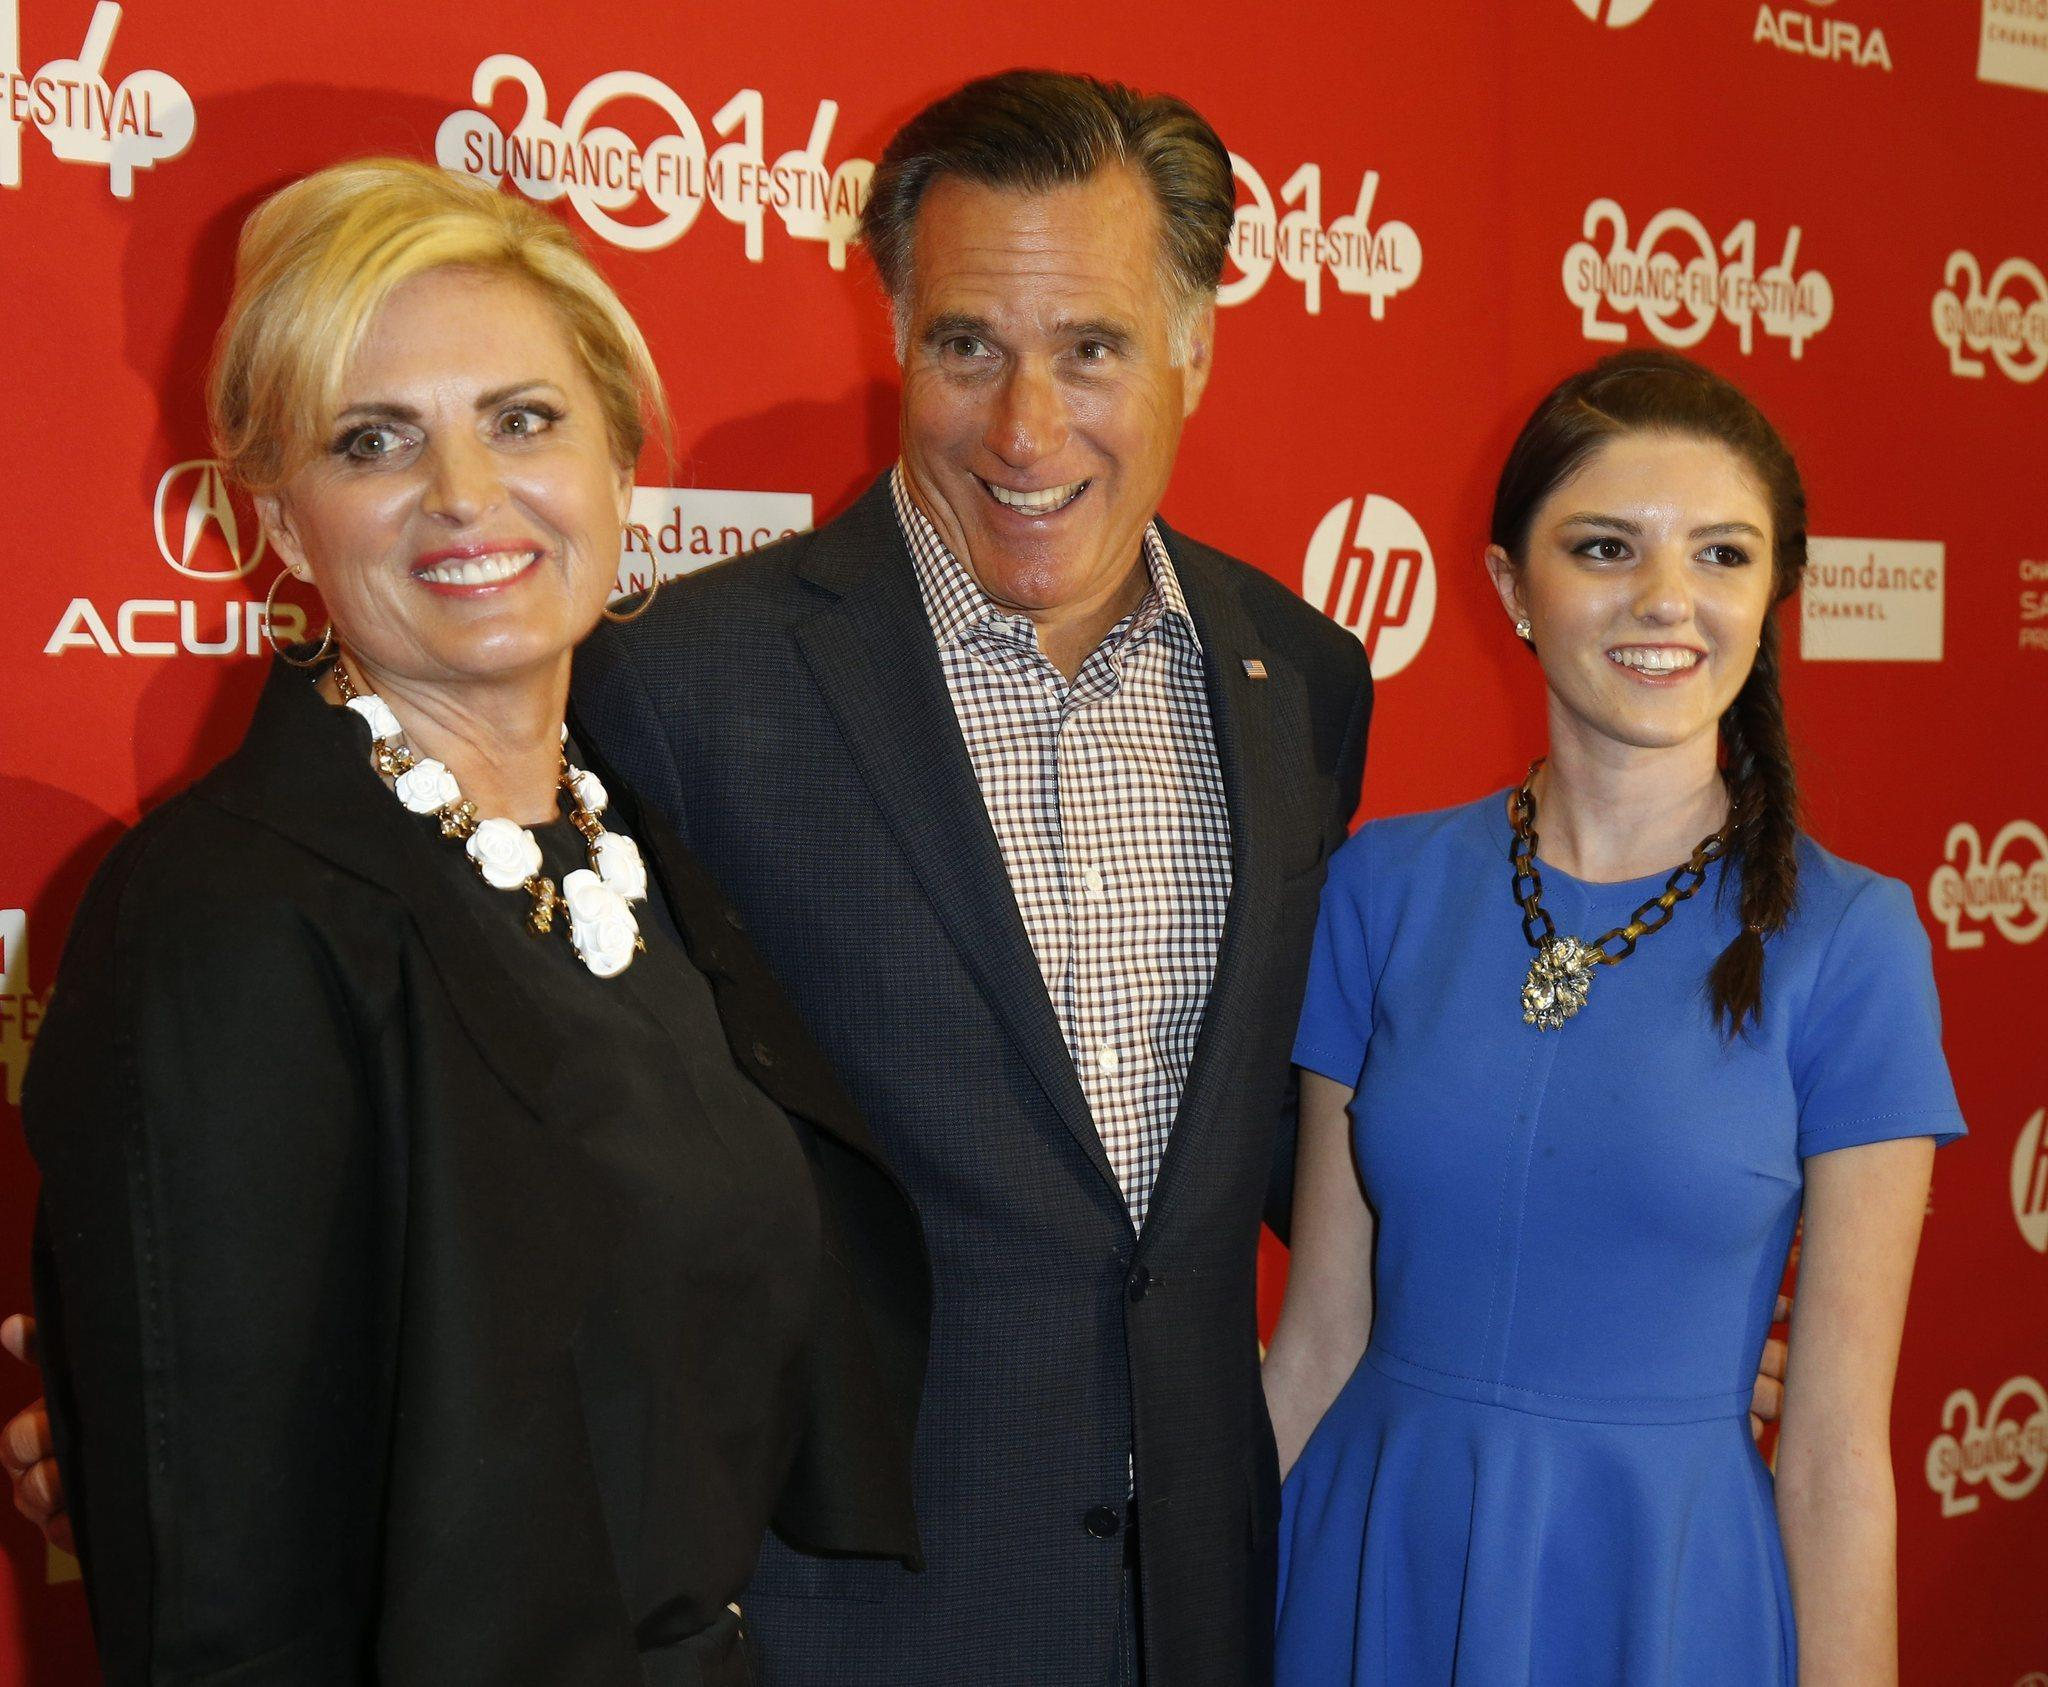 Former Republican prseidential candidate Mitt Romney, shown with his wife, Ann, and granddaughter Allie at the Sundance Film Festival, has endorsed former state legislator Tony Strickland for Congress.